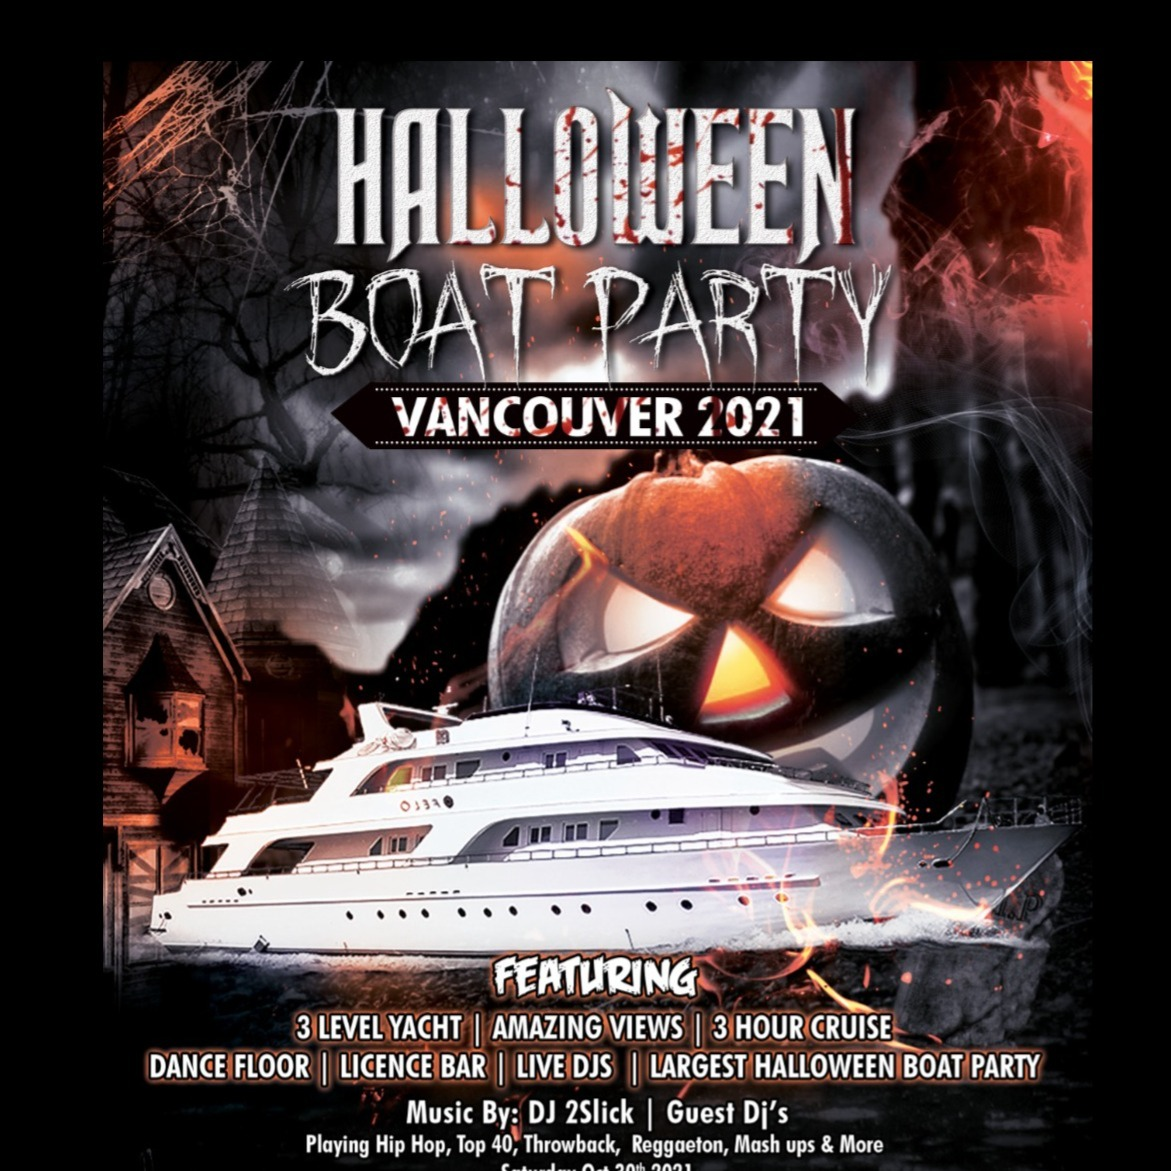 Halloween Boat Party Vancouver 2021